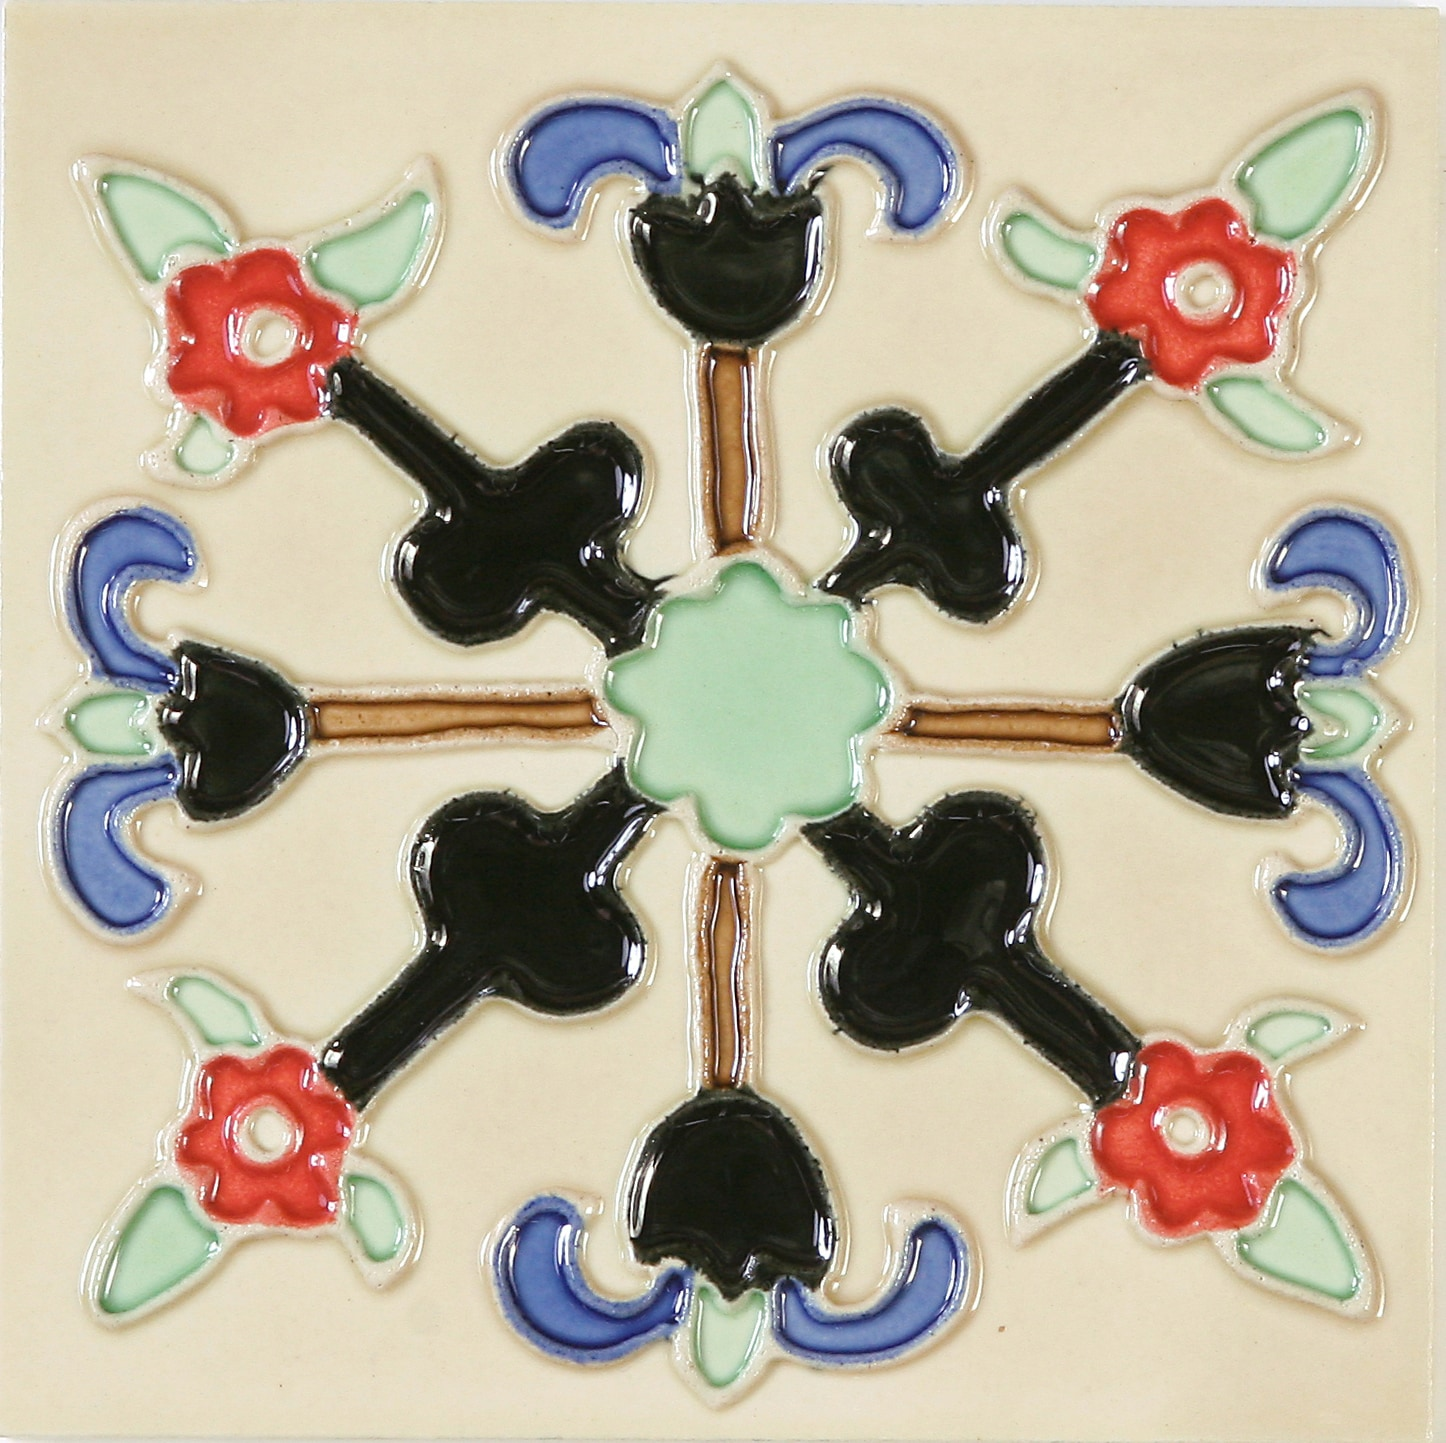 Hand-Painted Ceramic Glazed Wall Tile in Lanzas Hand-Painted Ceramic Glazed Wall Tile in Lanzas 0